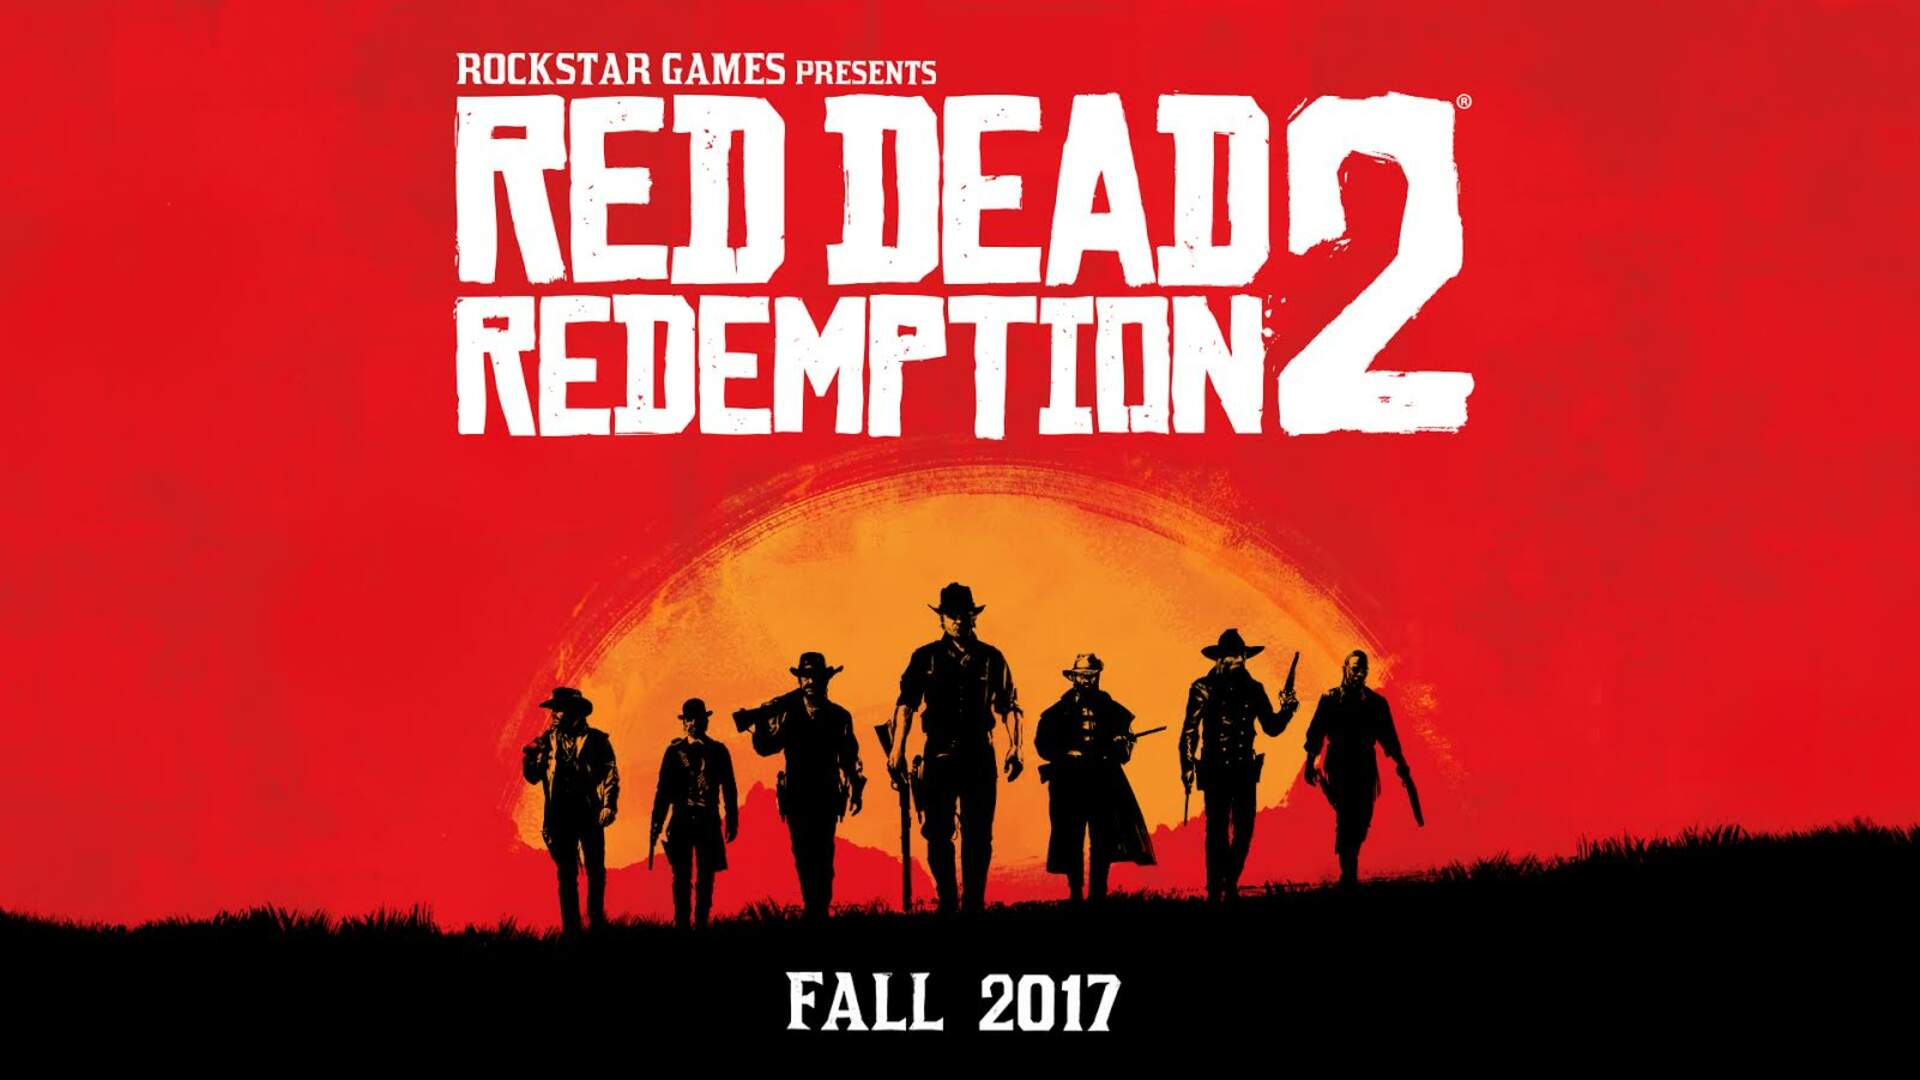 Red Dead Redemption 2 Gets Timed Exclusive Content on PS4